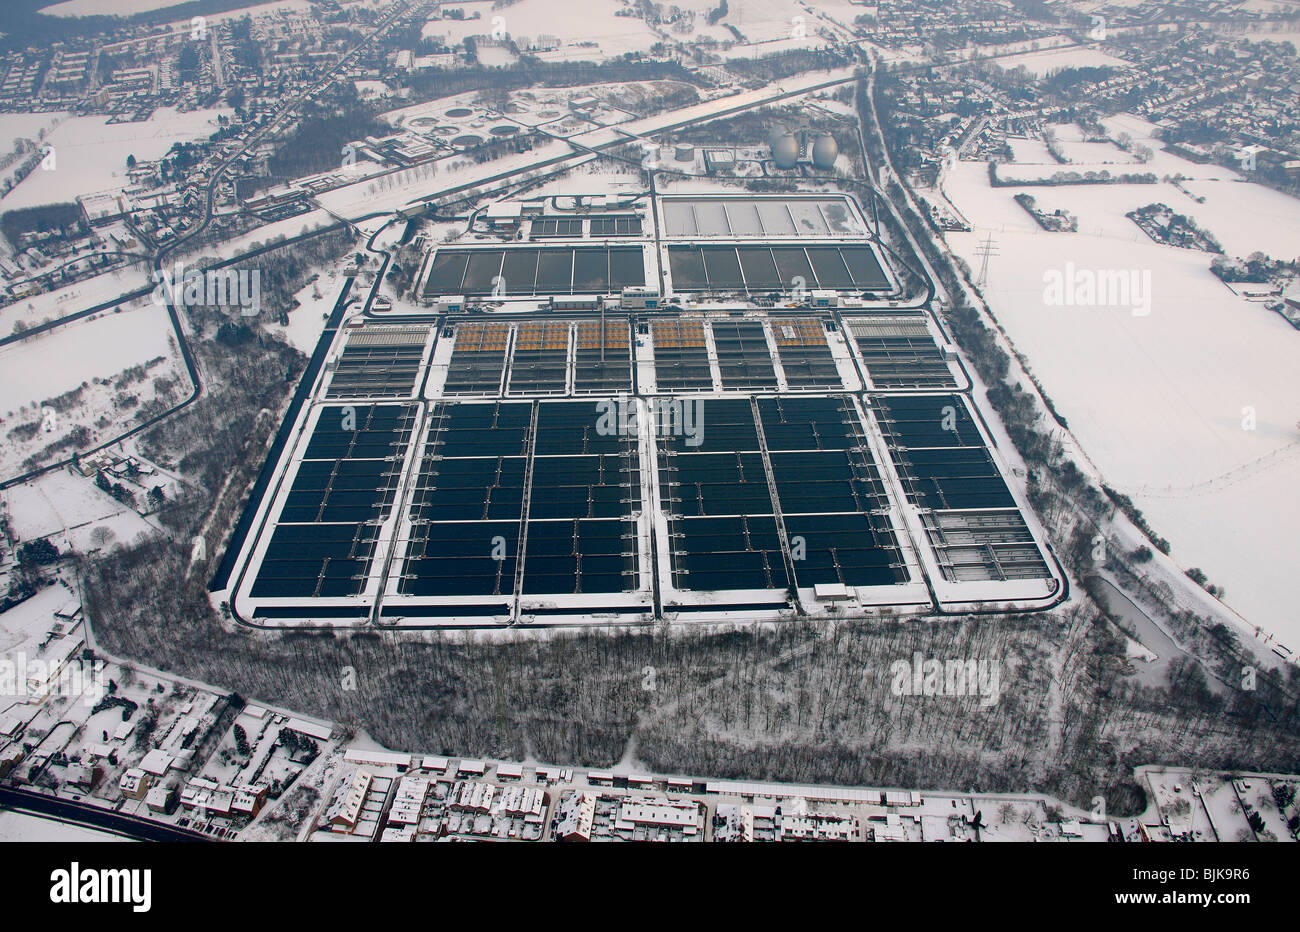 Aerial view, Emscher sewage treatment plant, Emscher river, Emscher course, Dinslaken, winter, snow, North Rhine - Stock Image